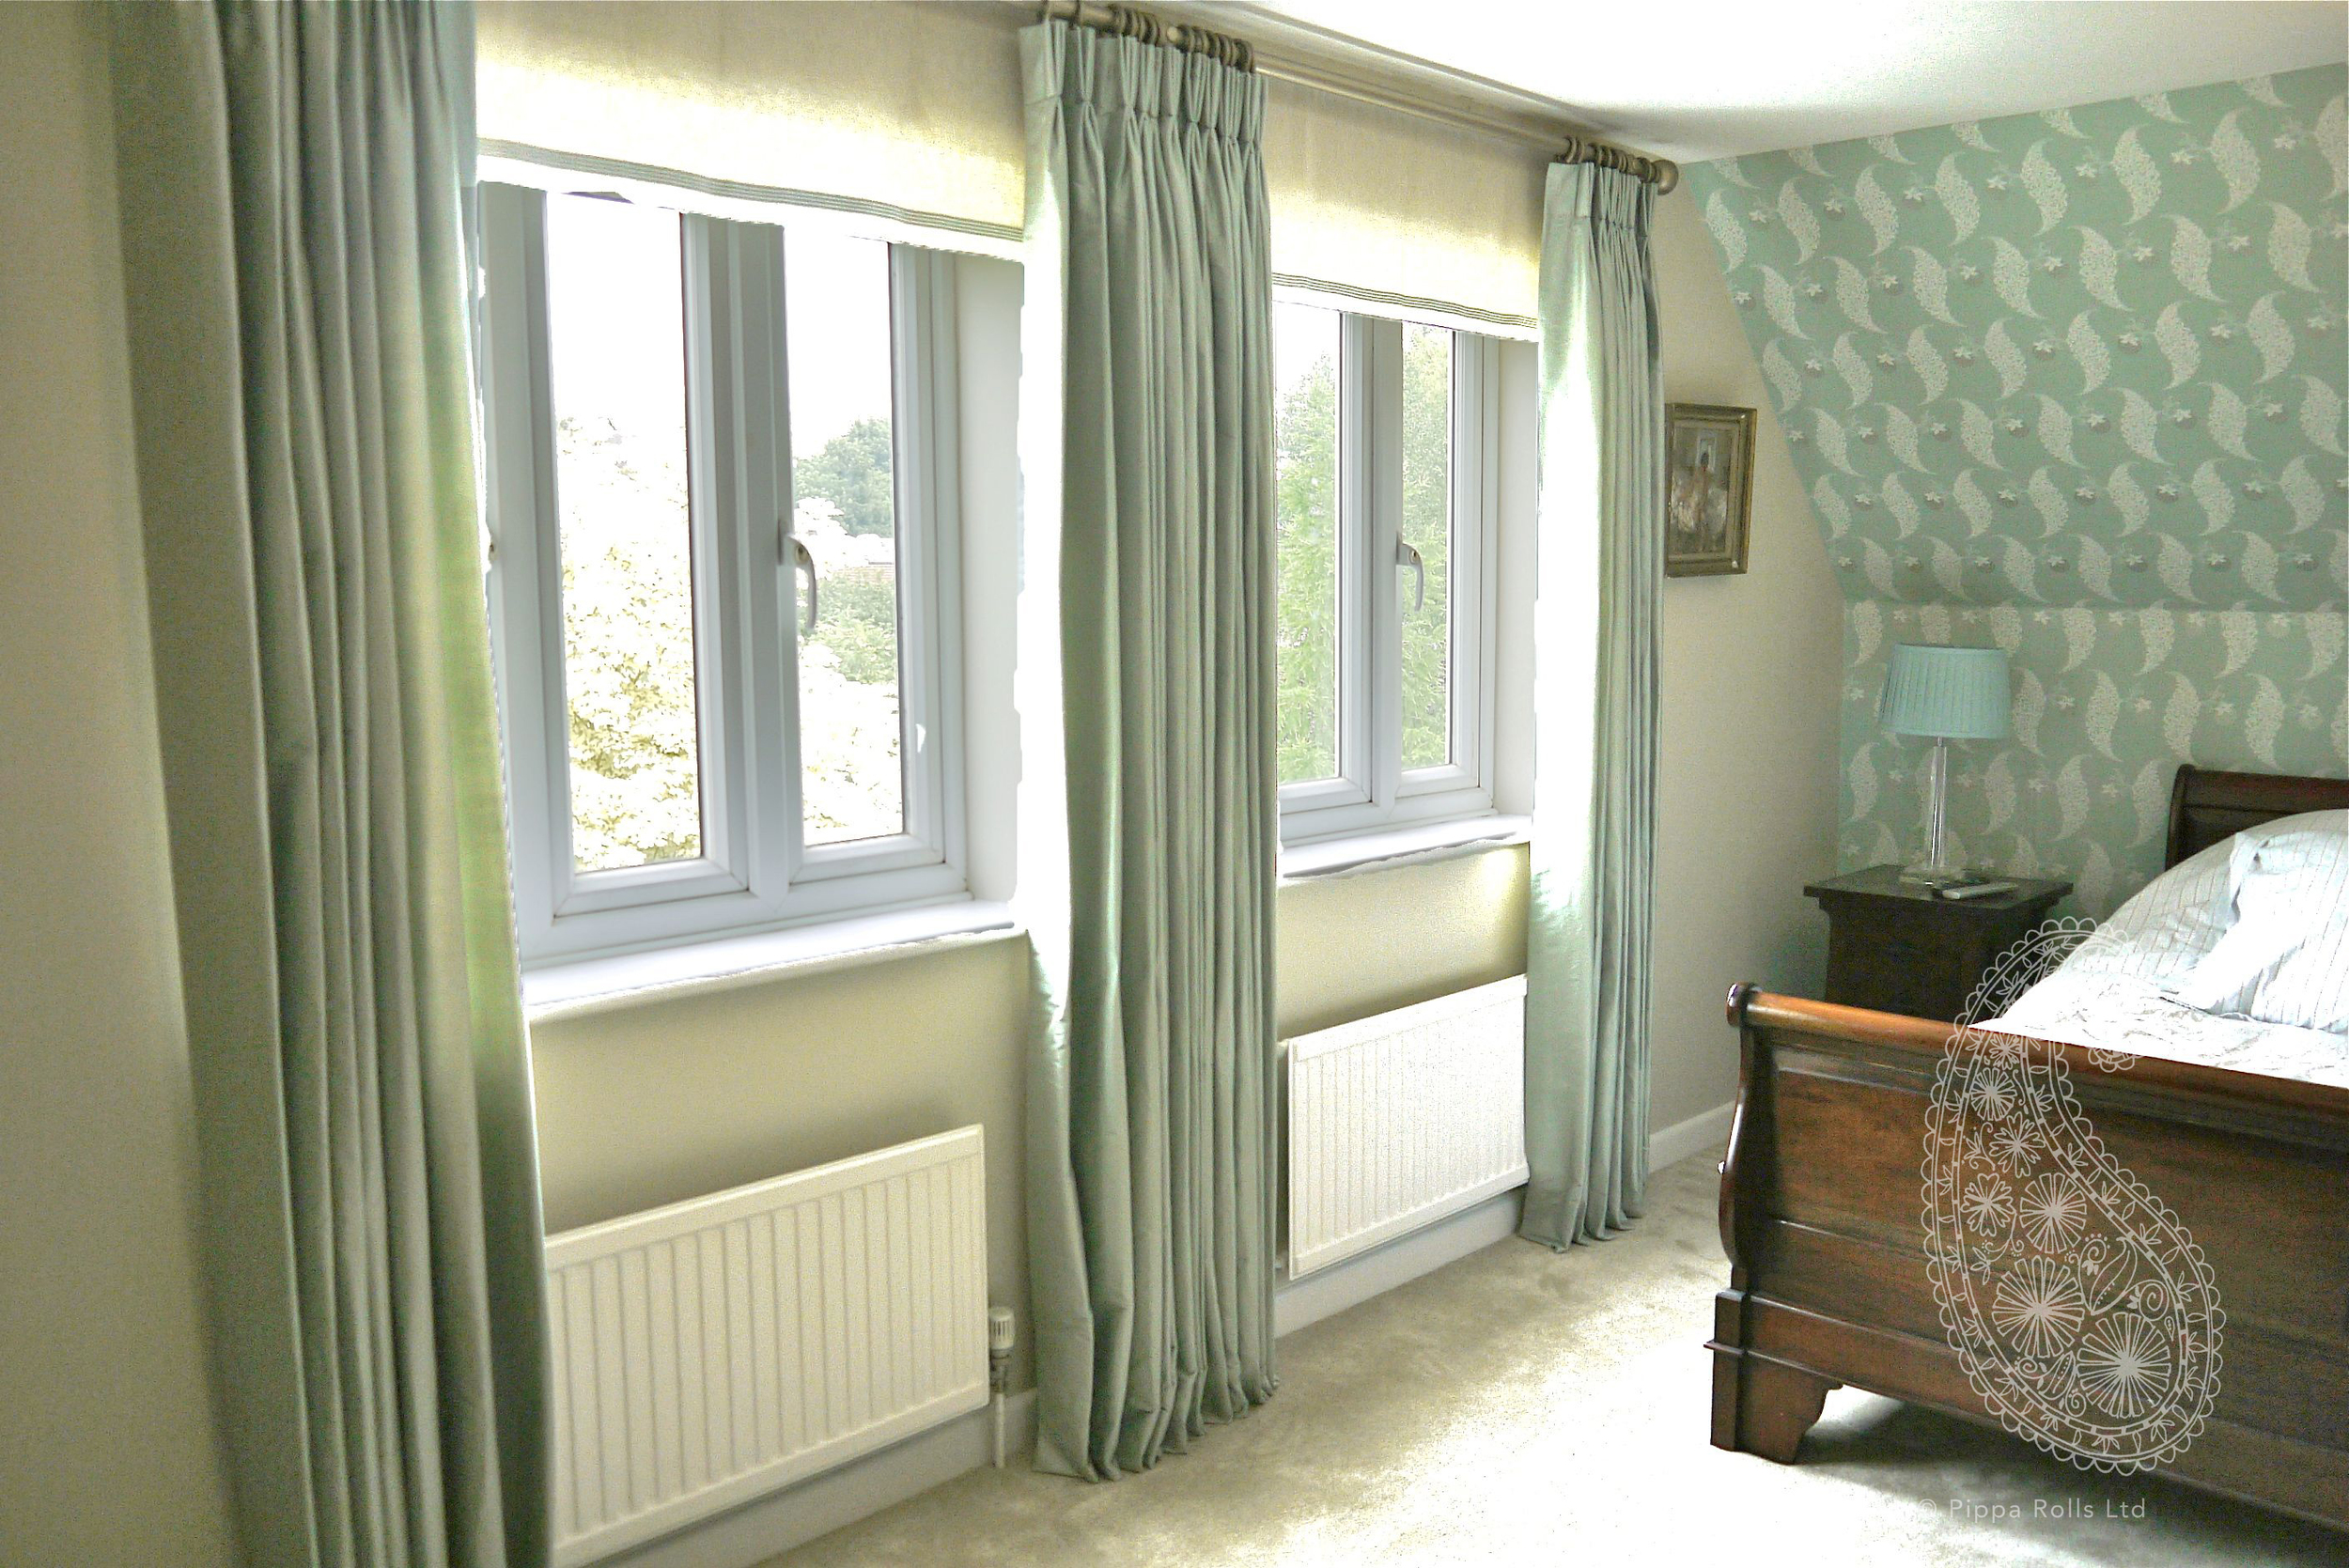 doms bedroom full window by Pippa Rolls Limited jpeg.jpg